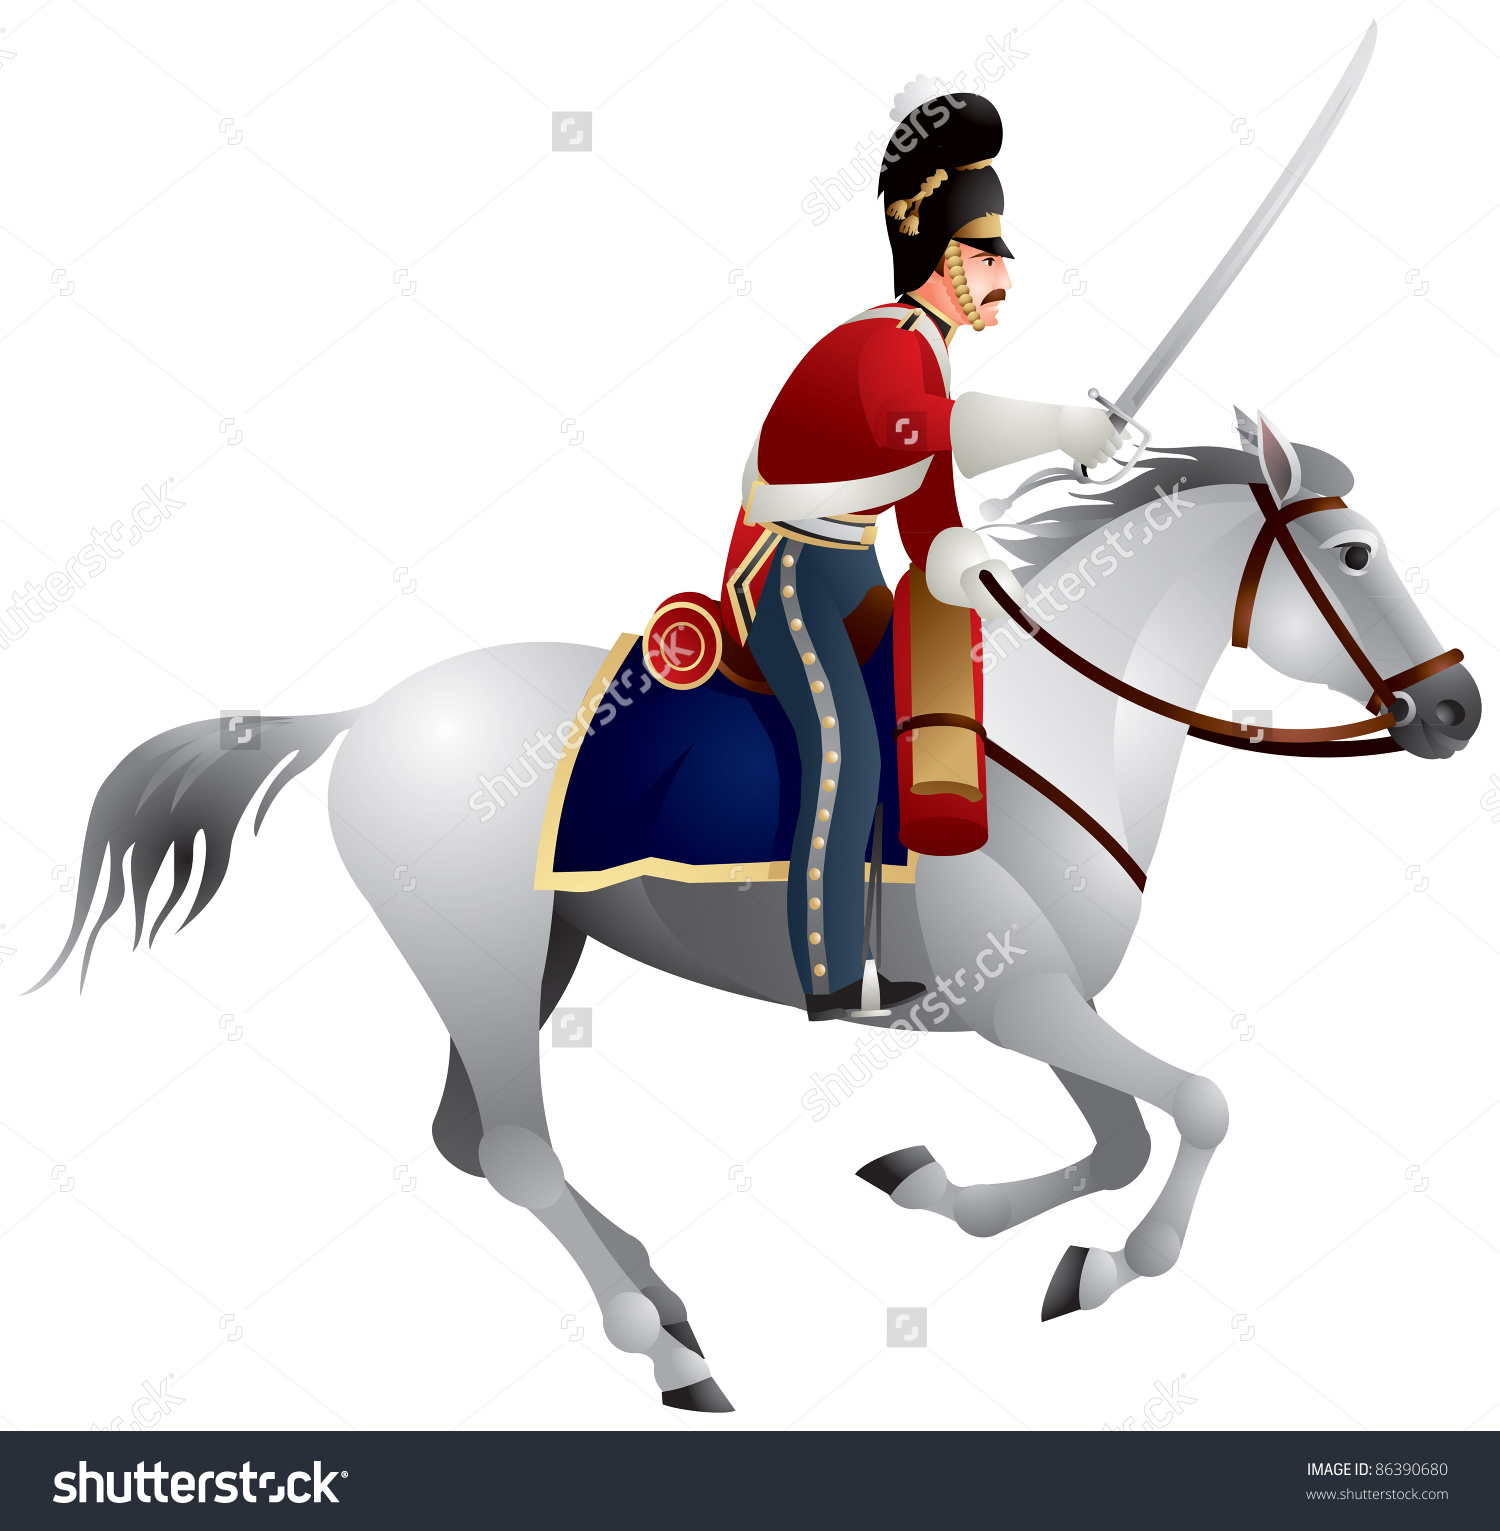 Royal Scots Greys British Army Cavalry Stock Vector 86390680.